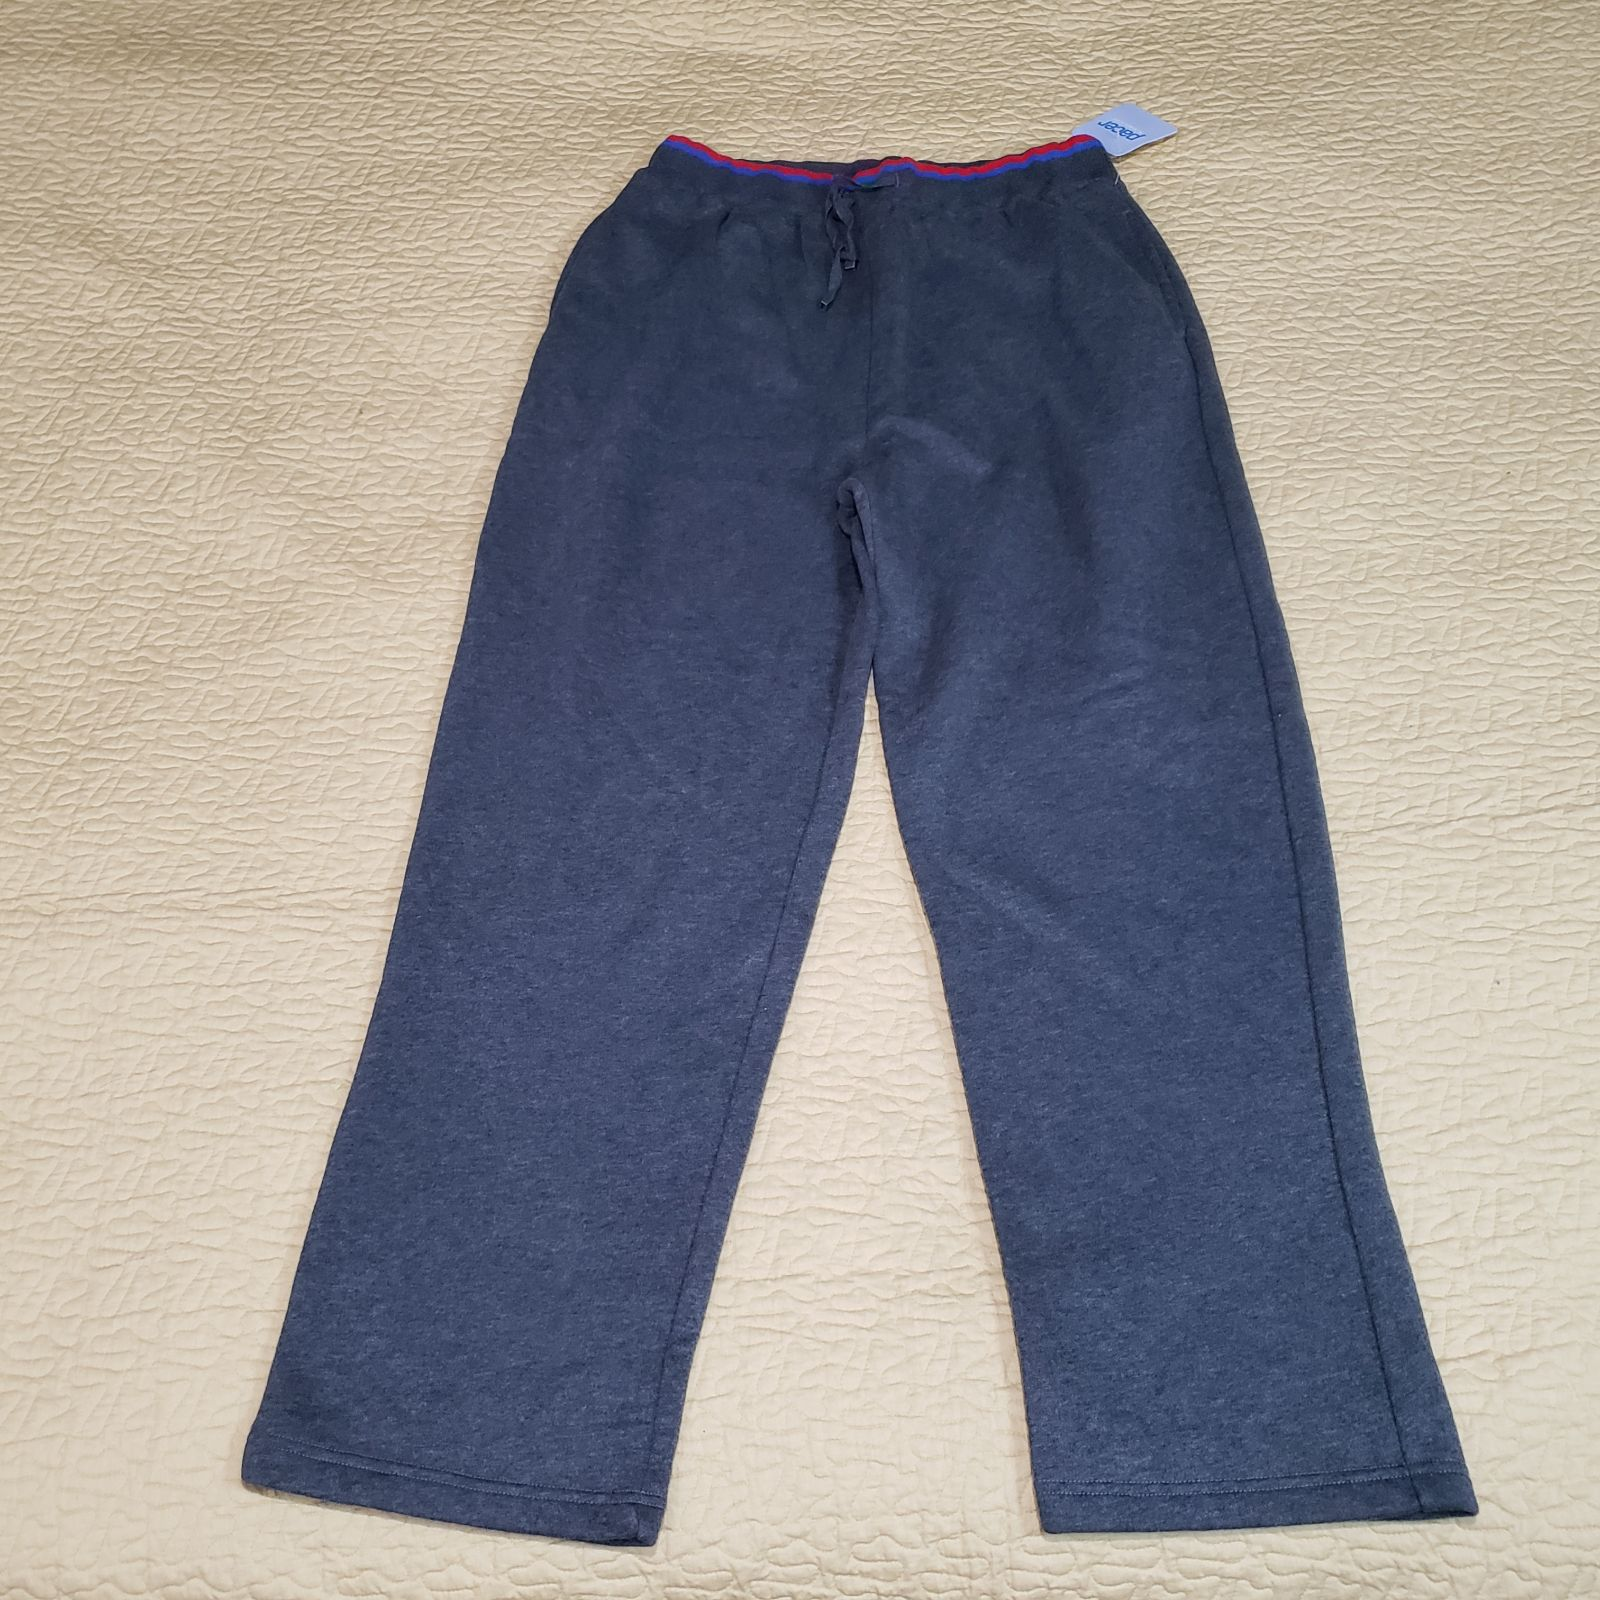 Men's Karen Scott sweatpants size XL